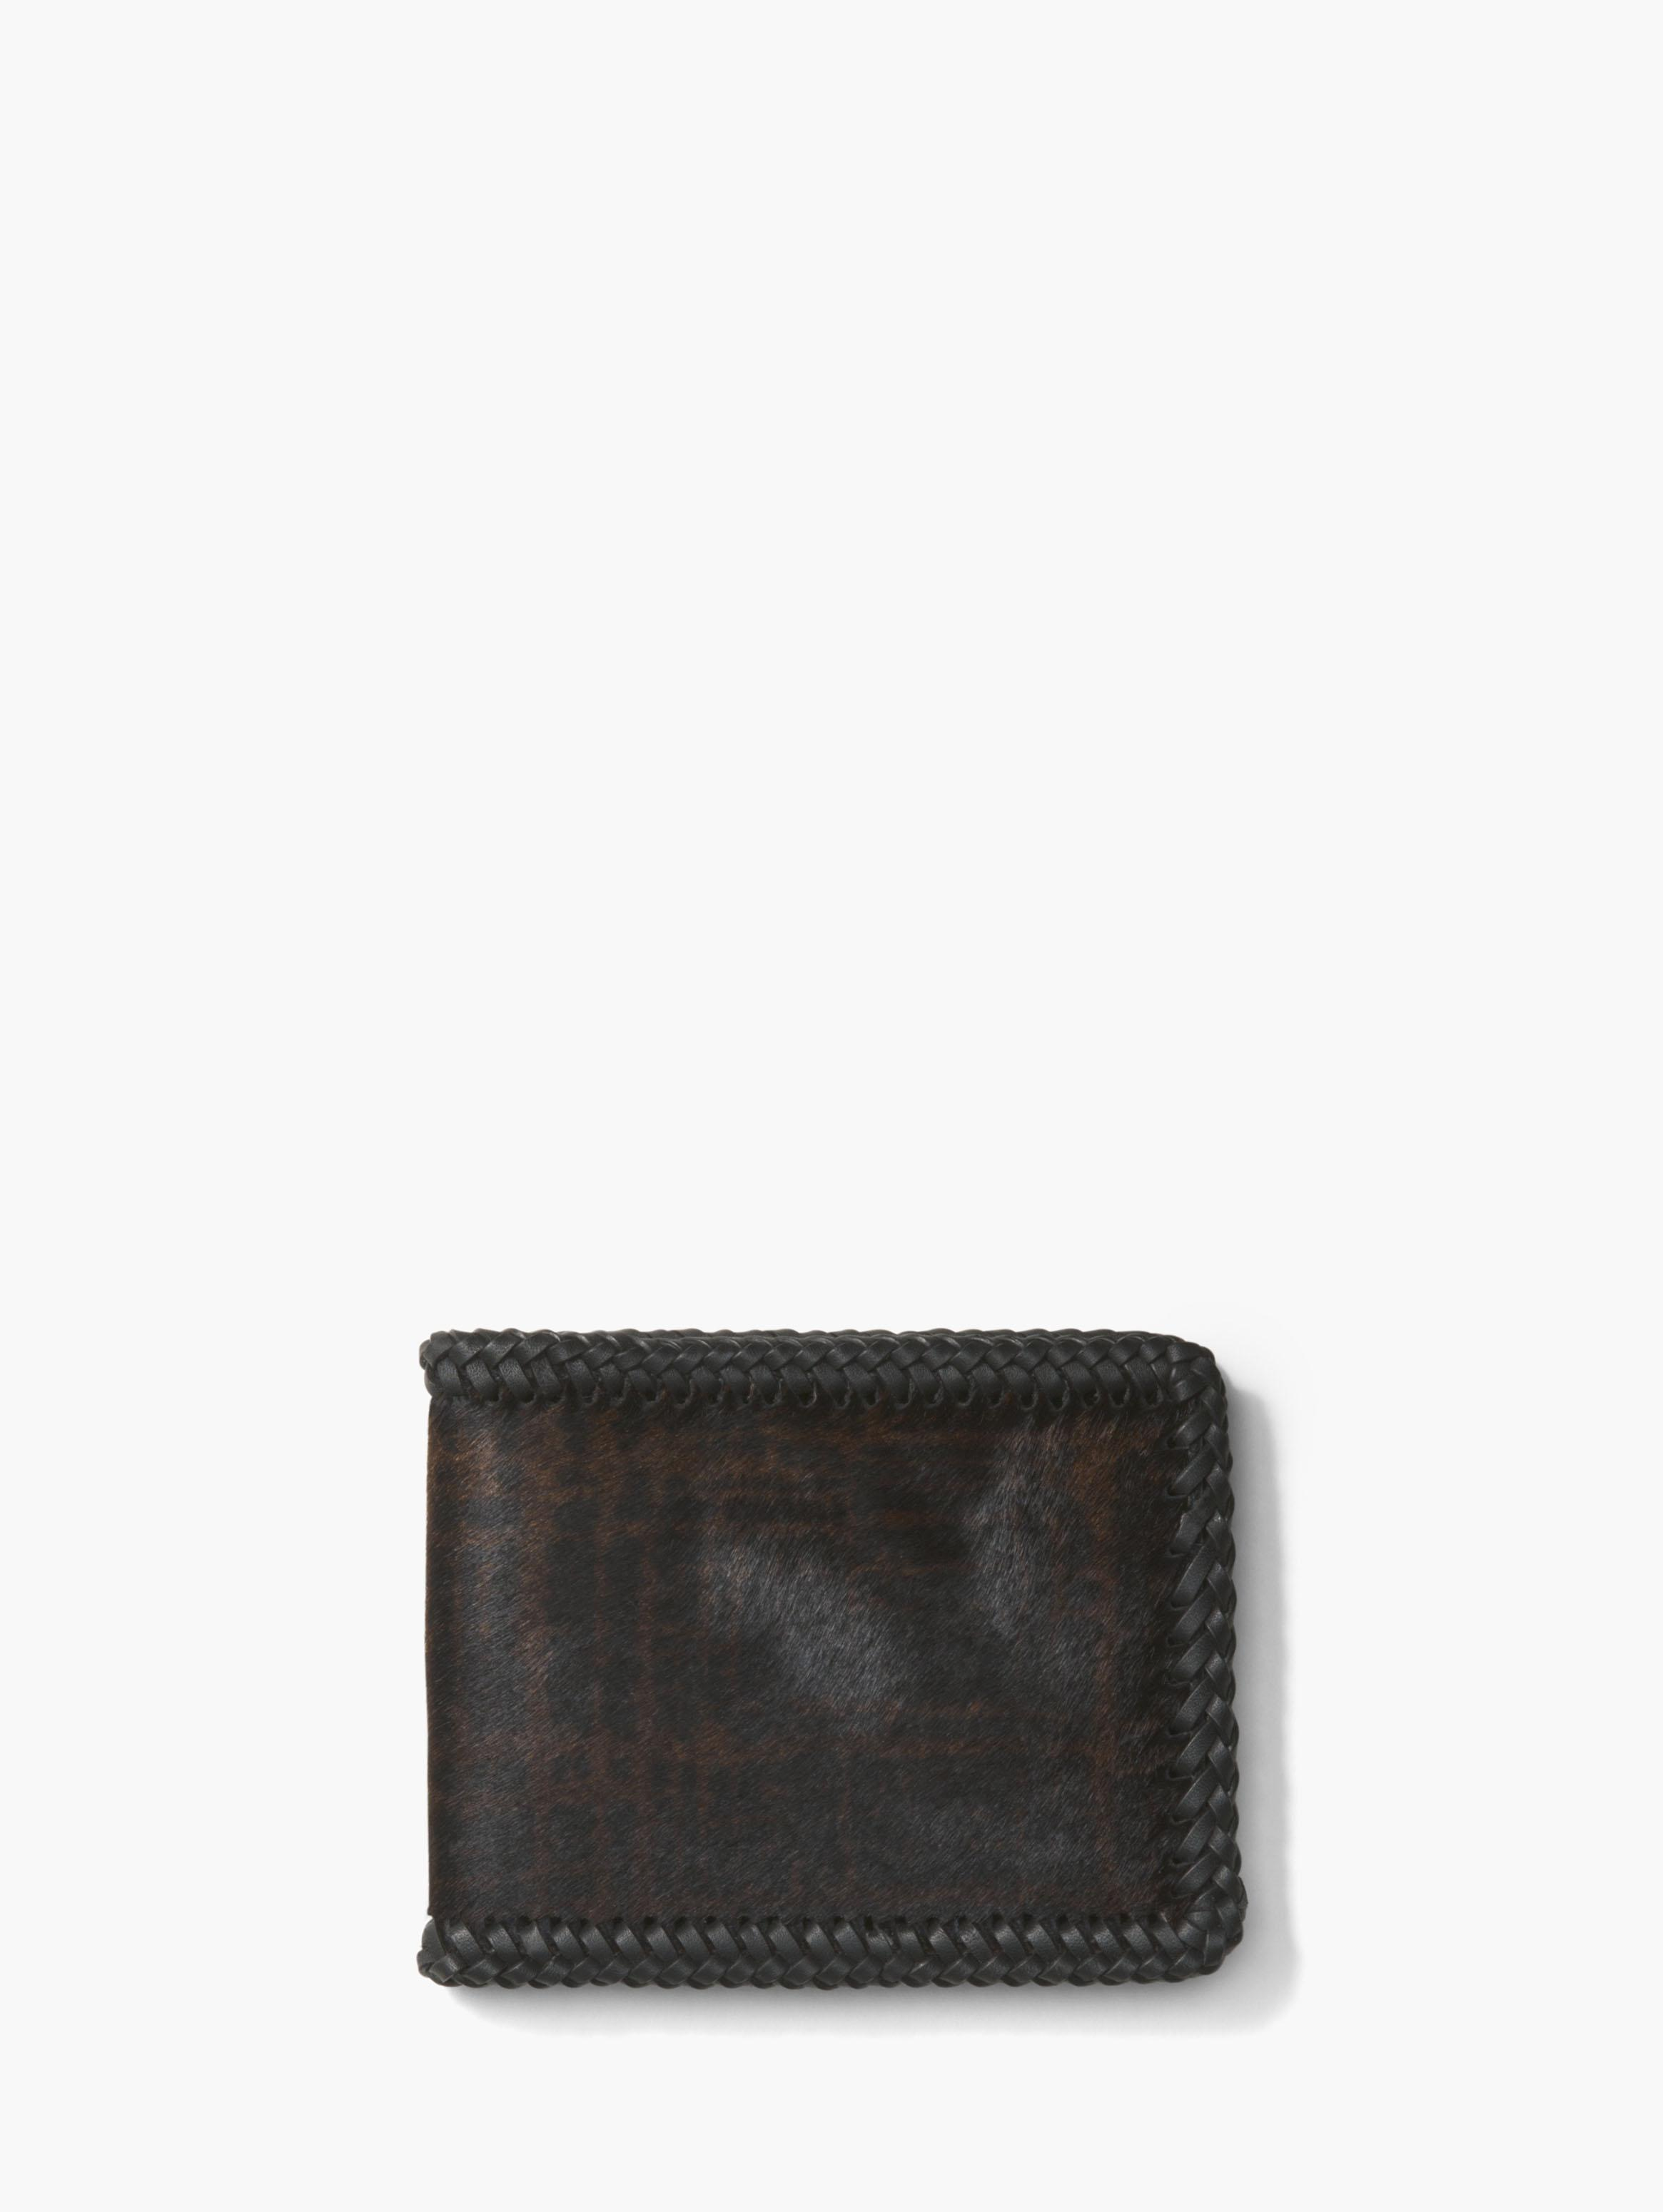 Whip Stitched Bill Fold Wallet